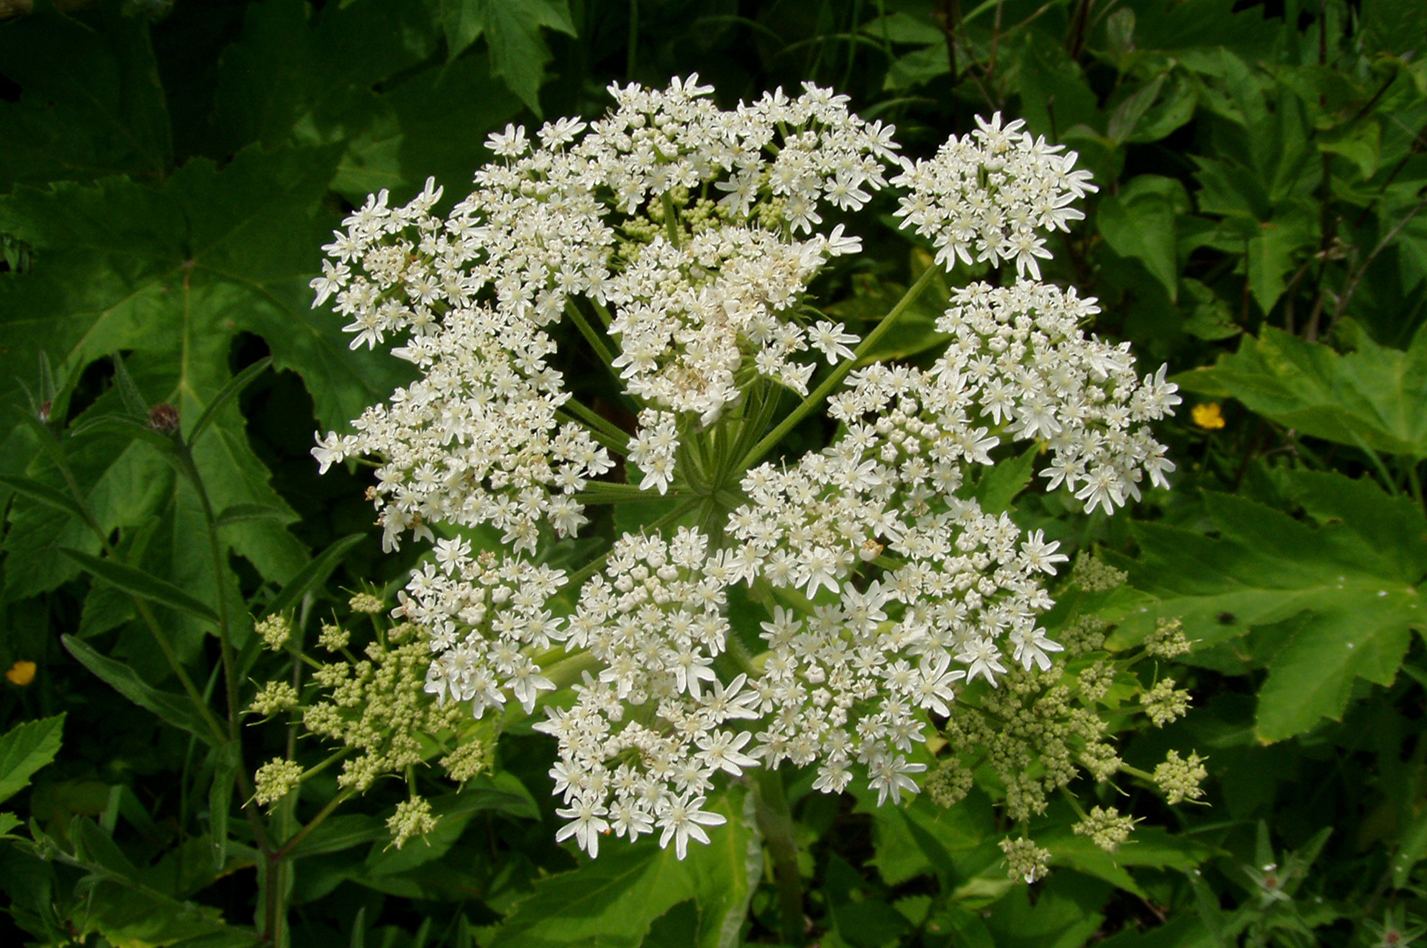 Cow Parsnip - Photo by Danielle Langlois